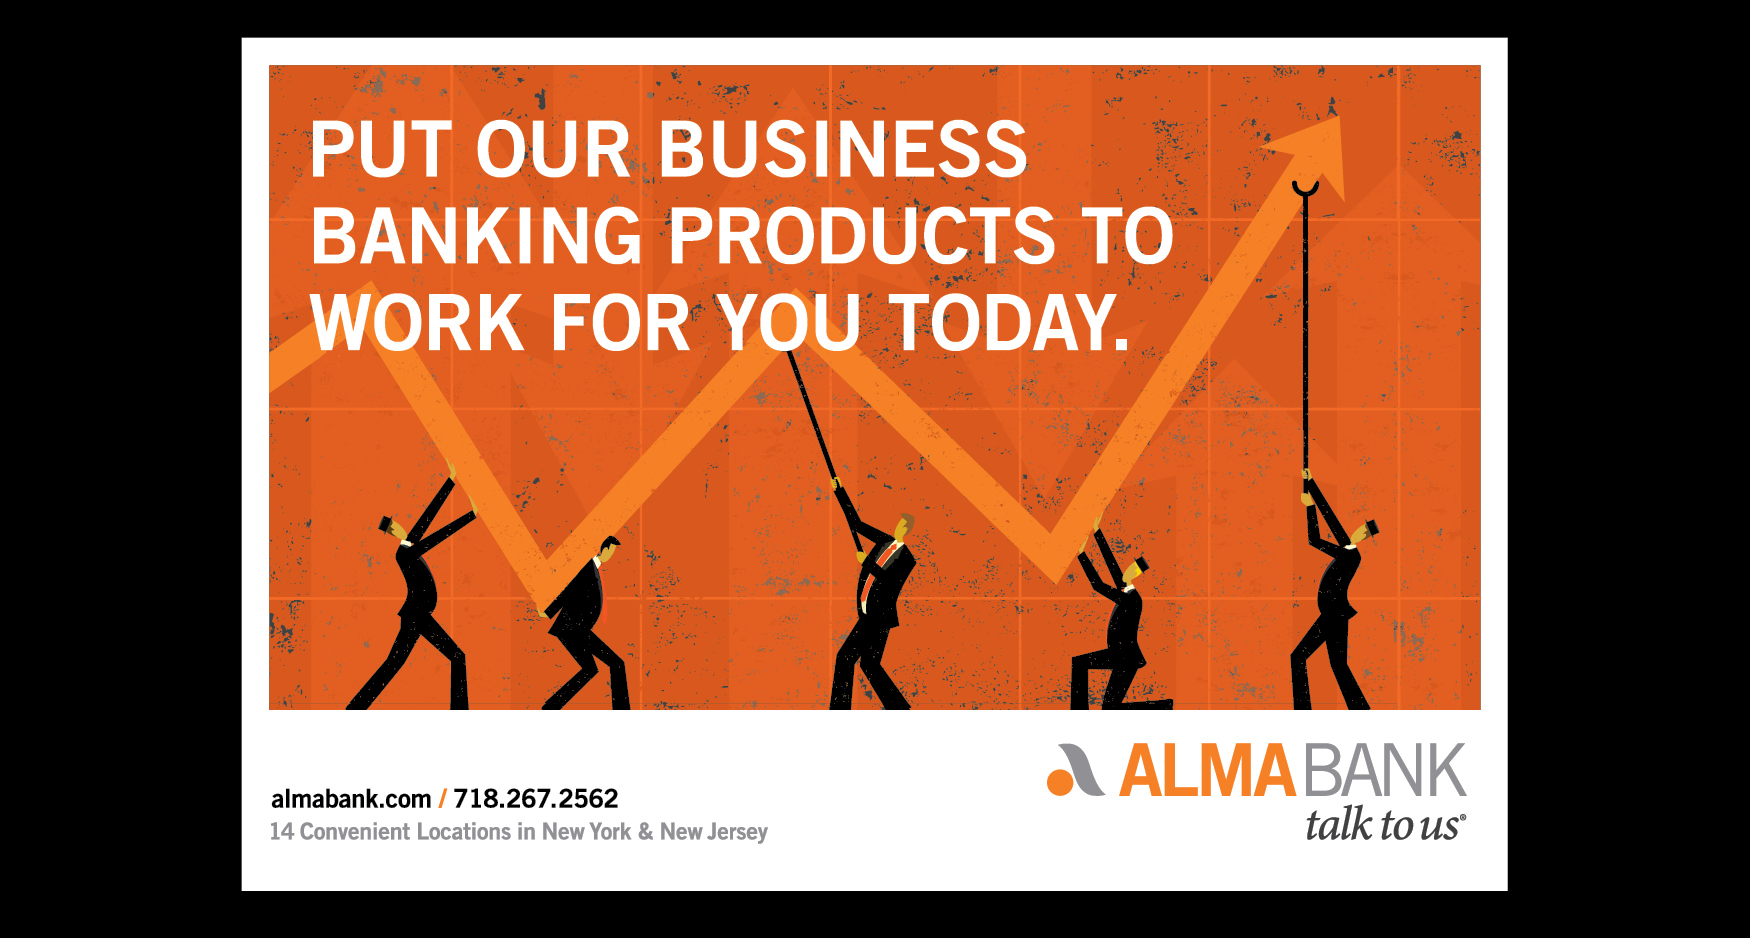 Alma Slide 4 - ALMA BANK - BUSINESS BANKING PROMOTION